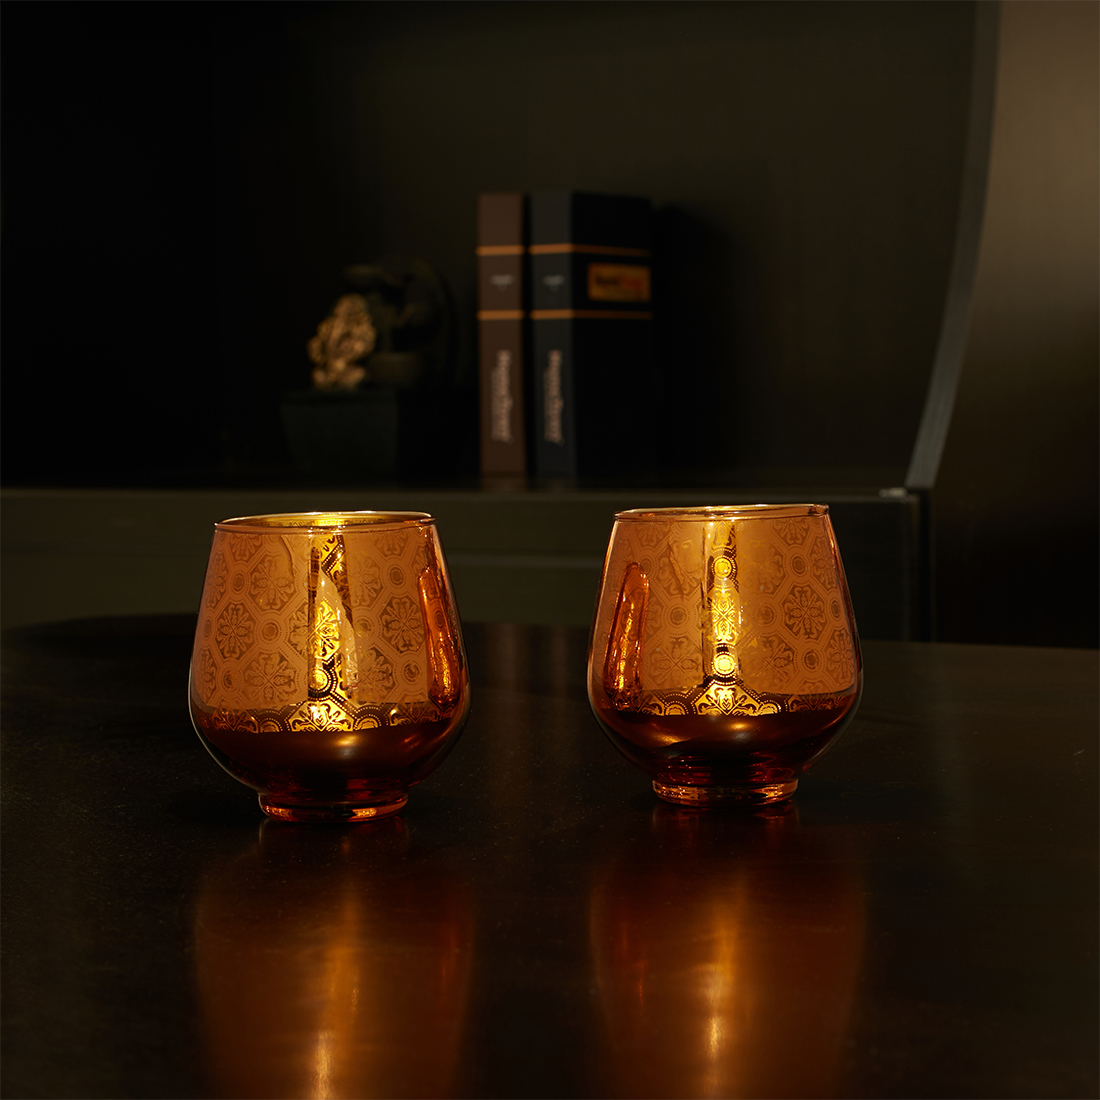 Zahara Set Of 2 Round Flower Glass Candle Holders in ORANGE ORANGE Colour by Living Essence